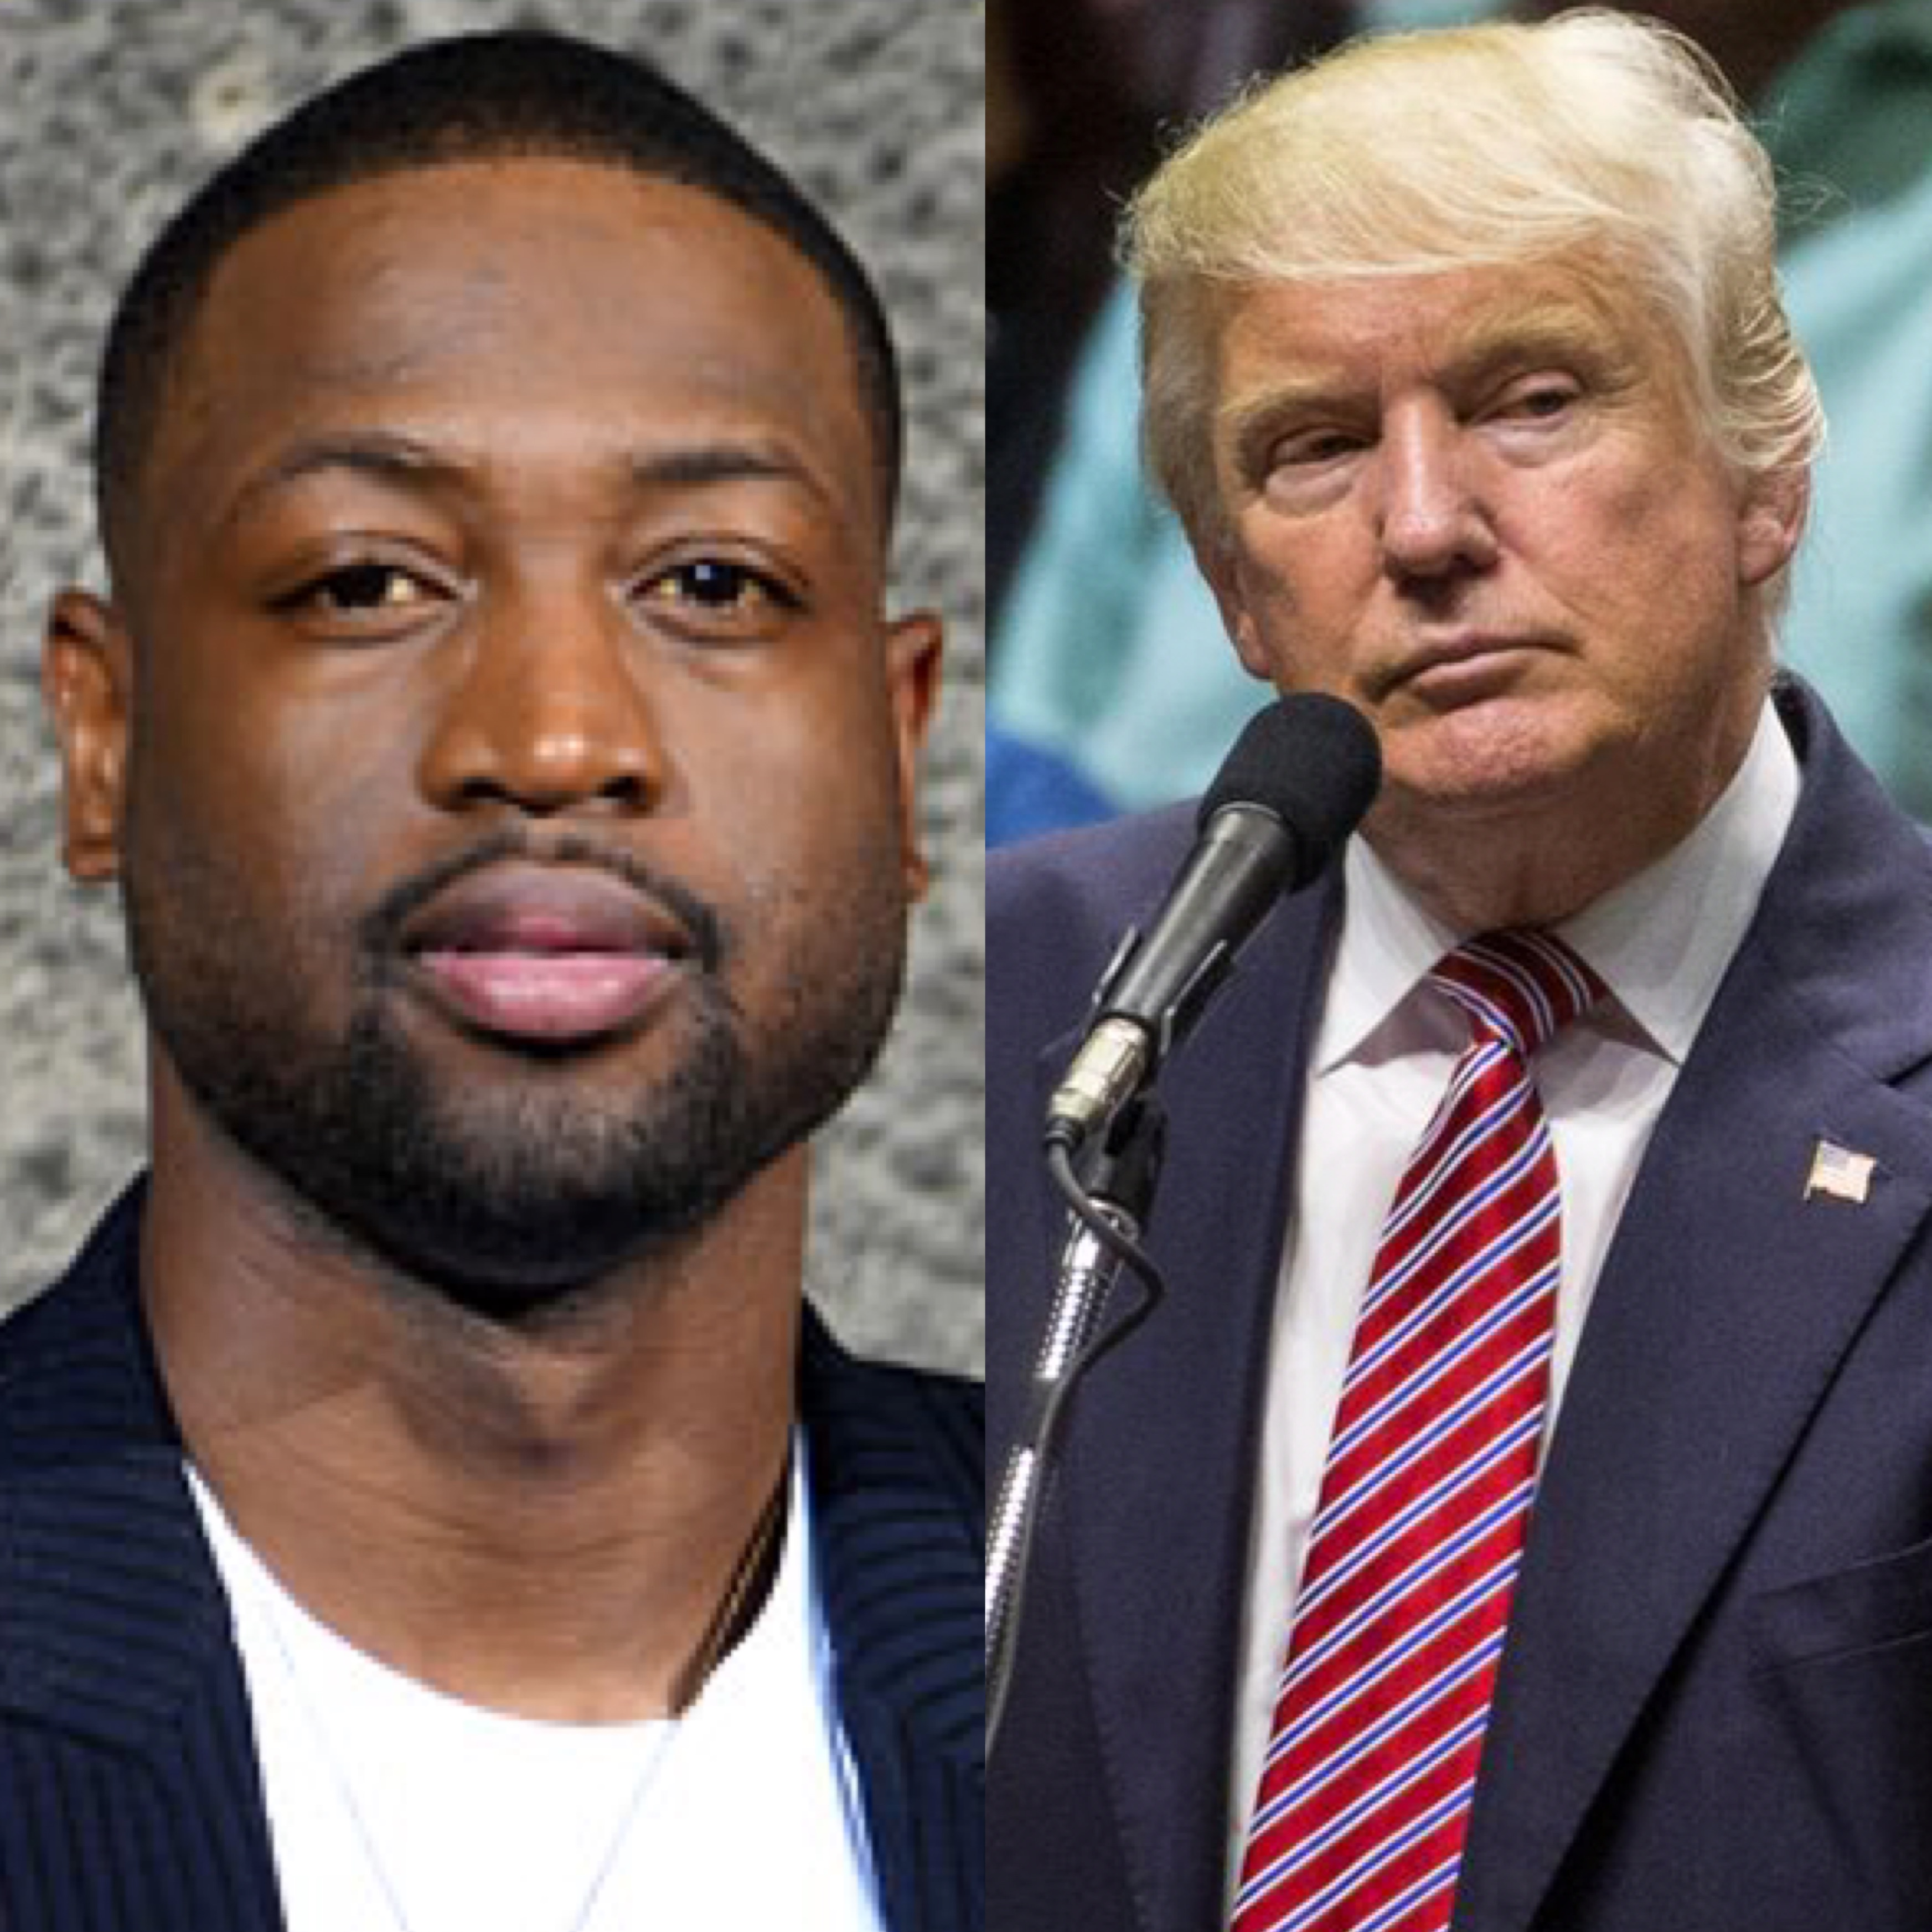 Donald Trump Shows Lack of Empathy Over Dwyane Wade's Murdered Cousin